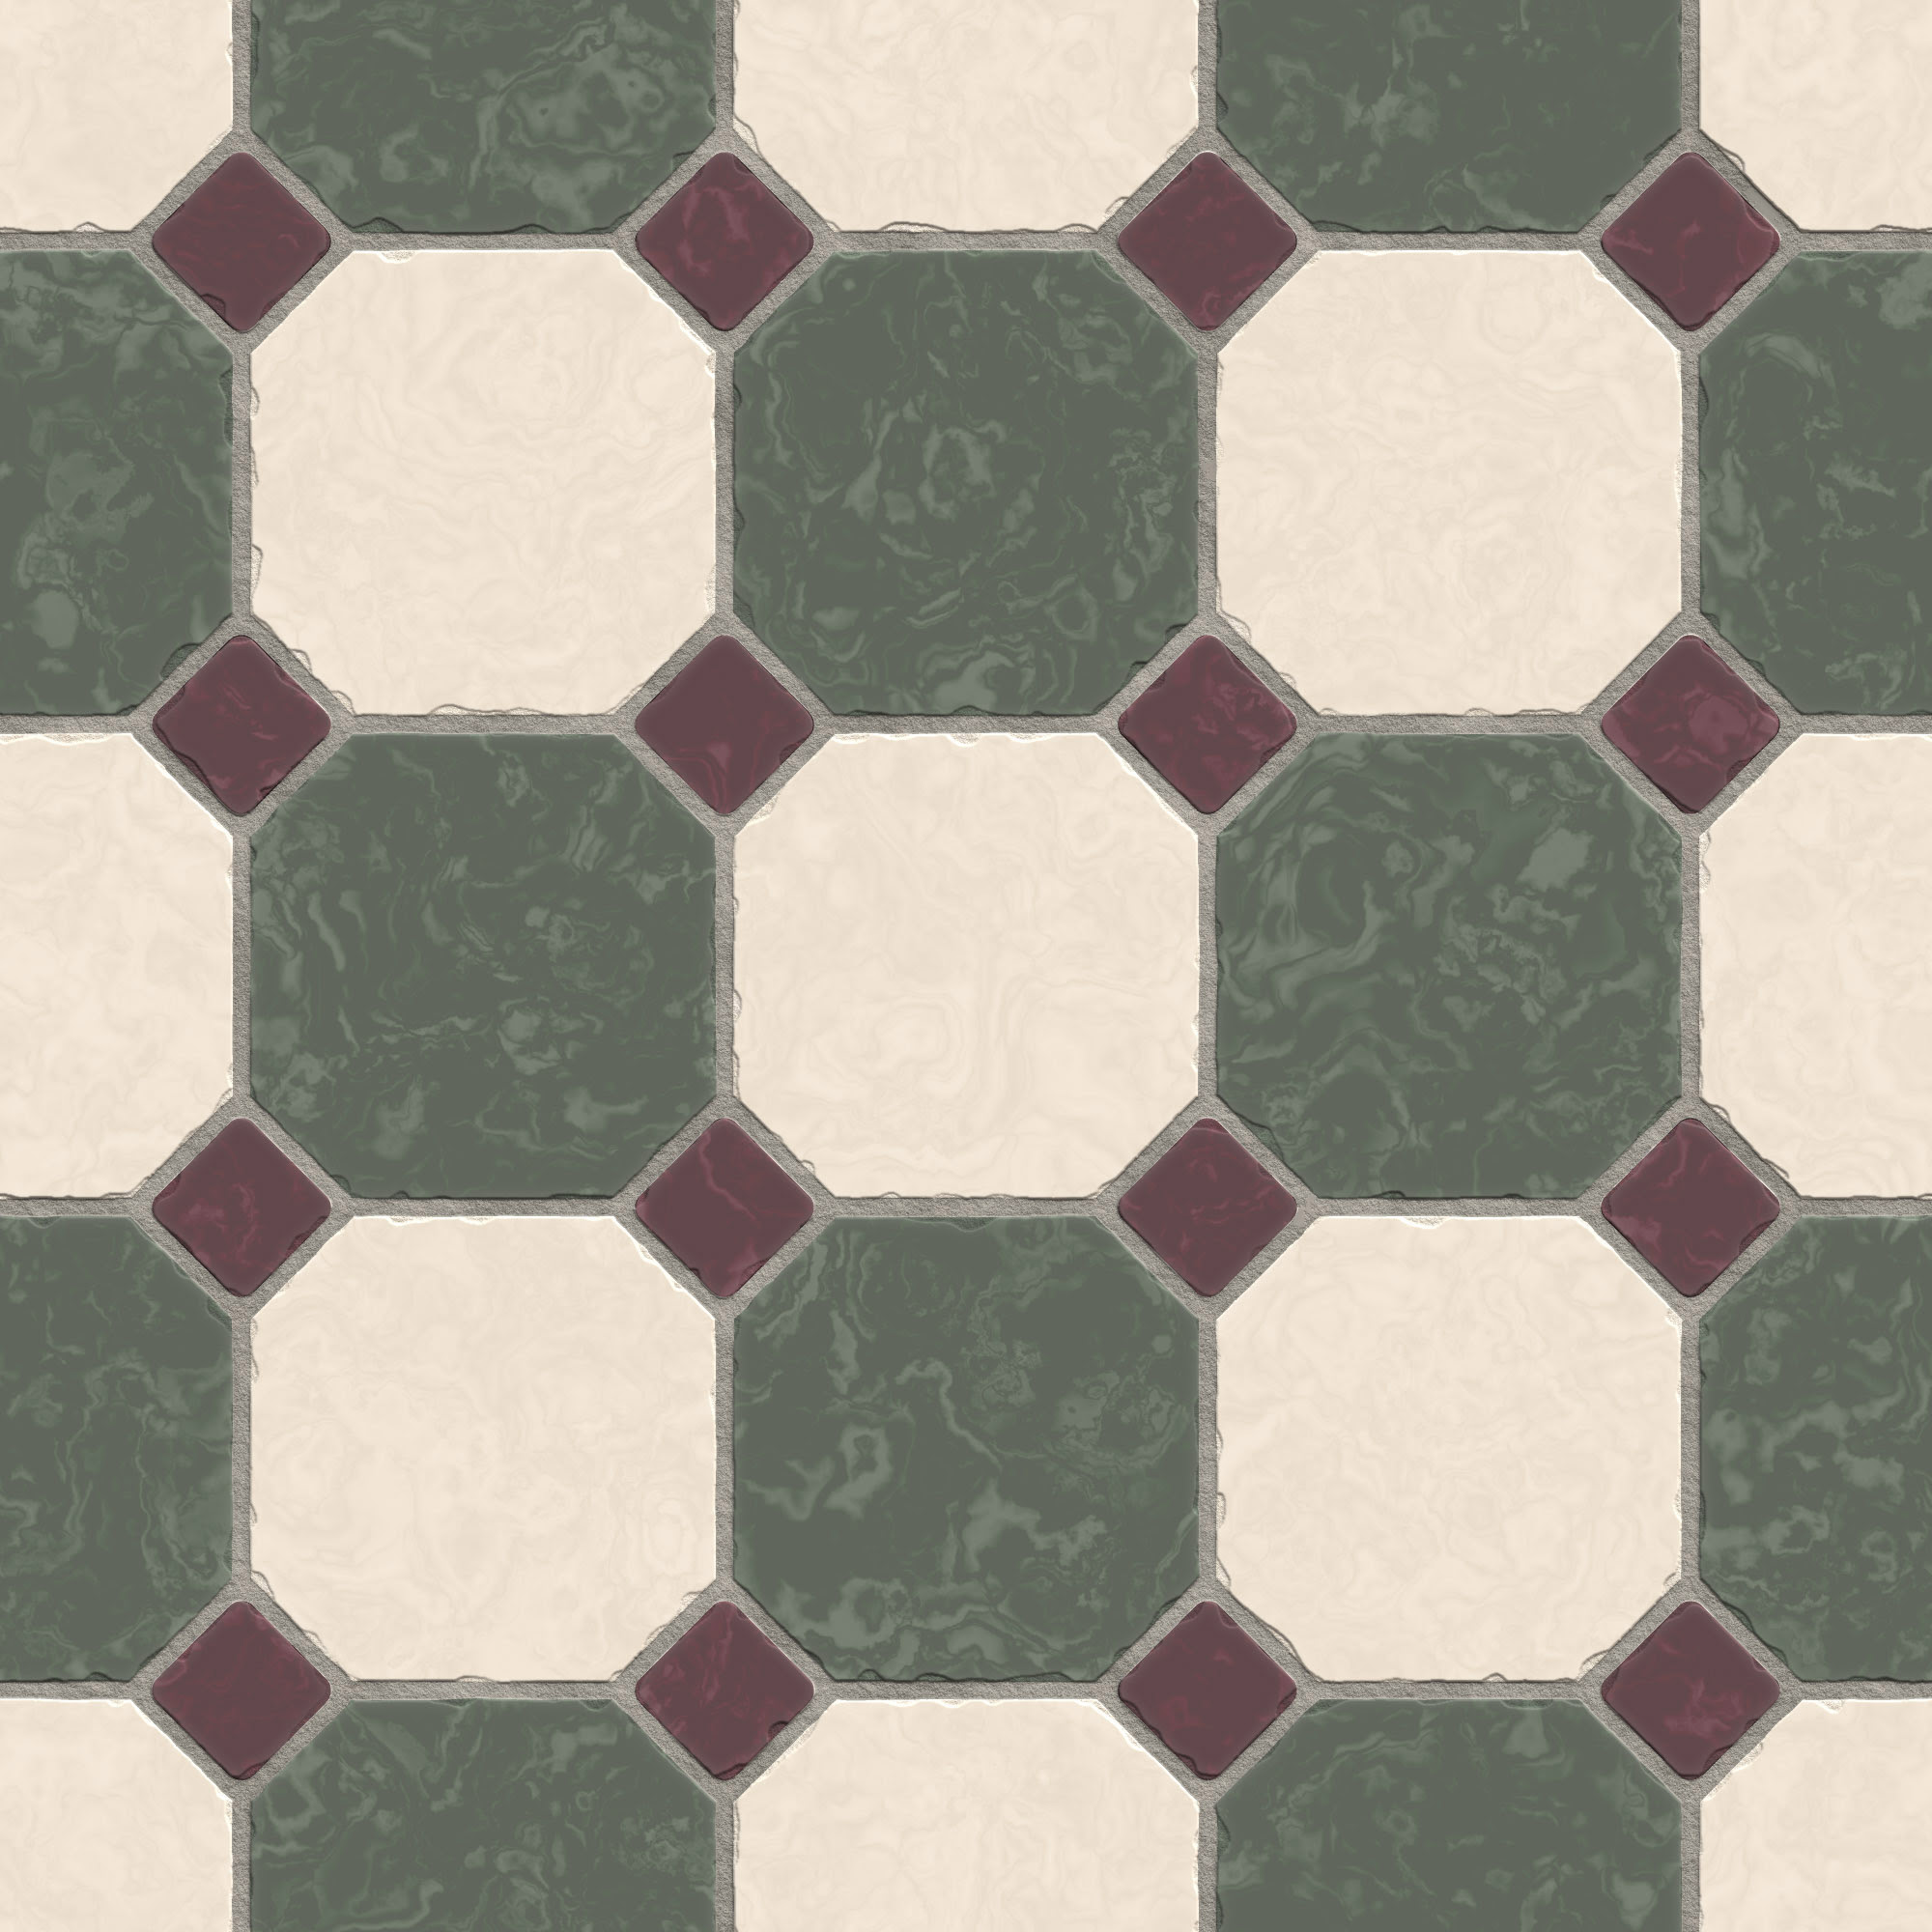 Seamless patterned floor tile background texture | www ...